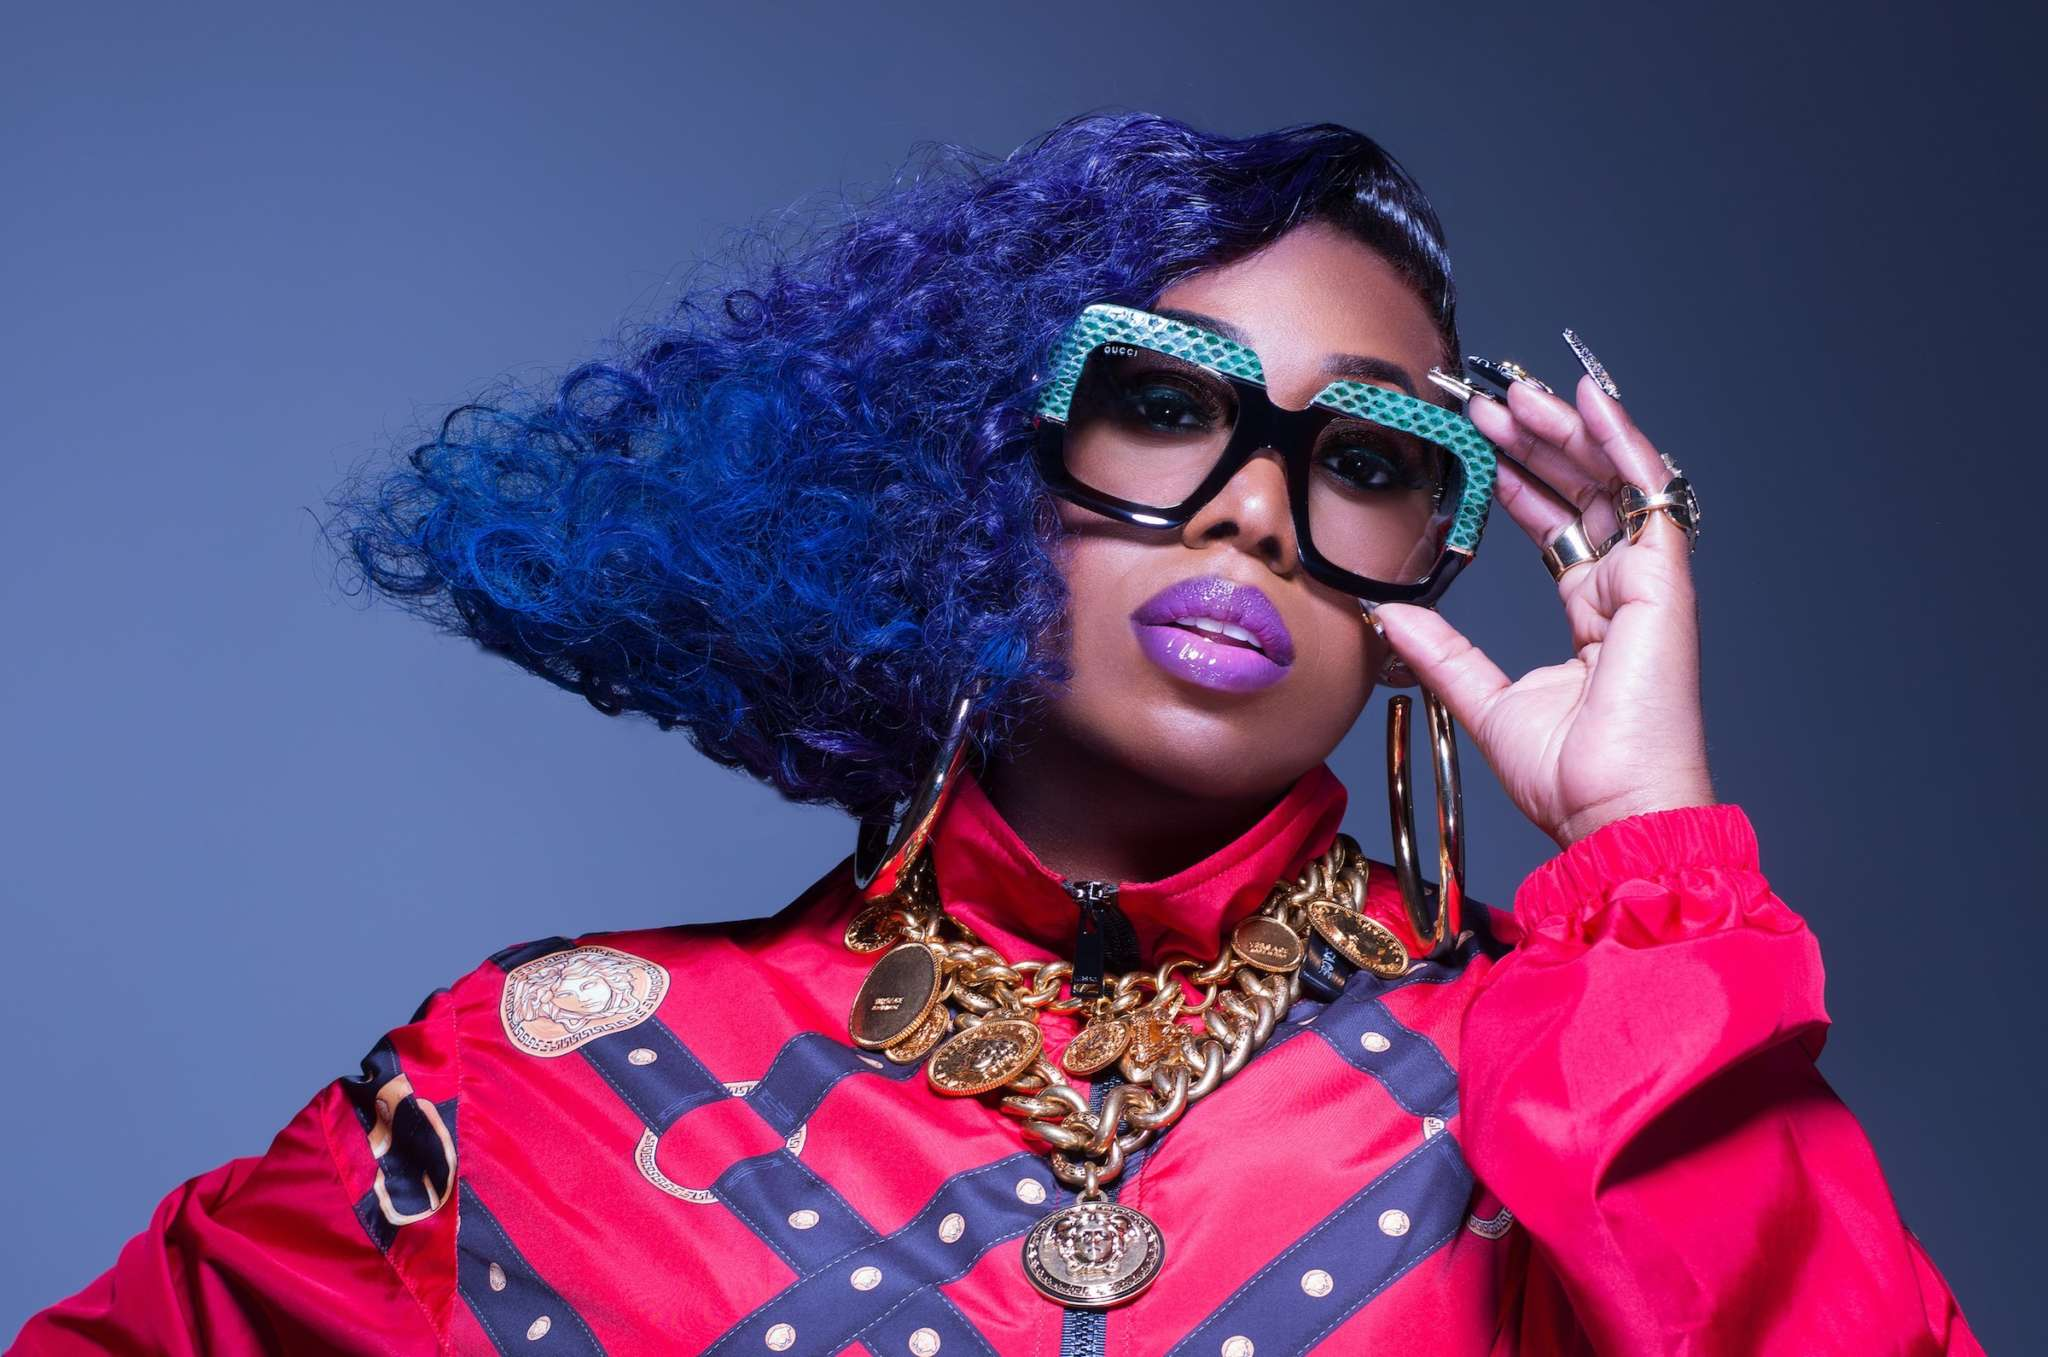 Missy Elliott Recreates The Classic 'Supa Dupa Fly' Album Cover After 22 Years - See It Here!